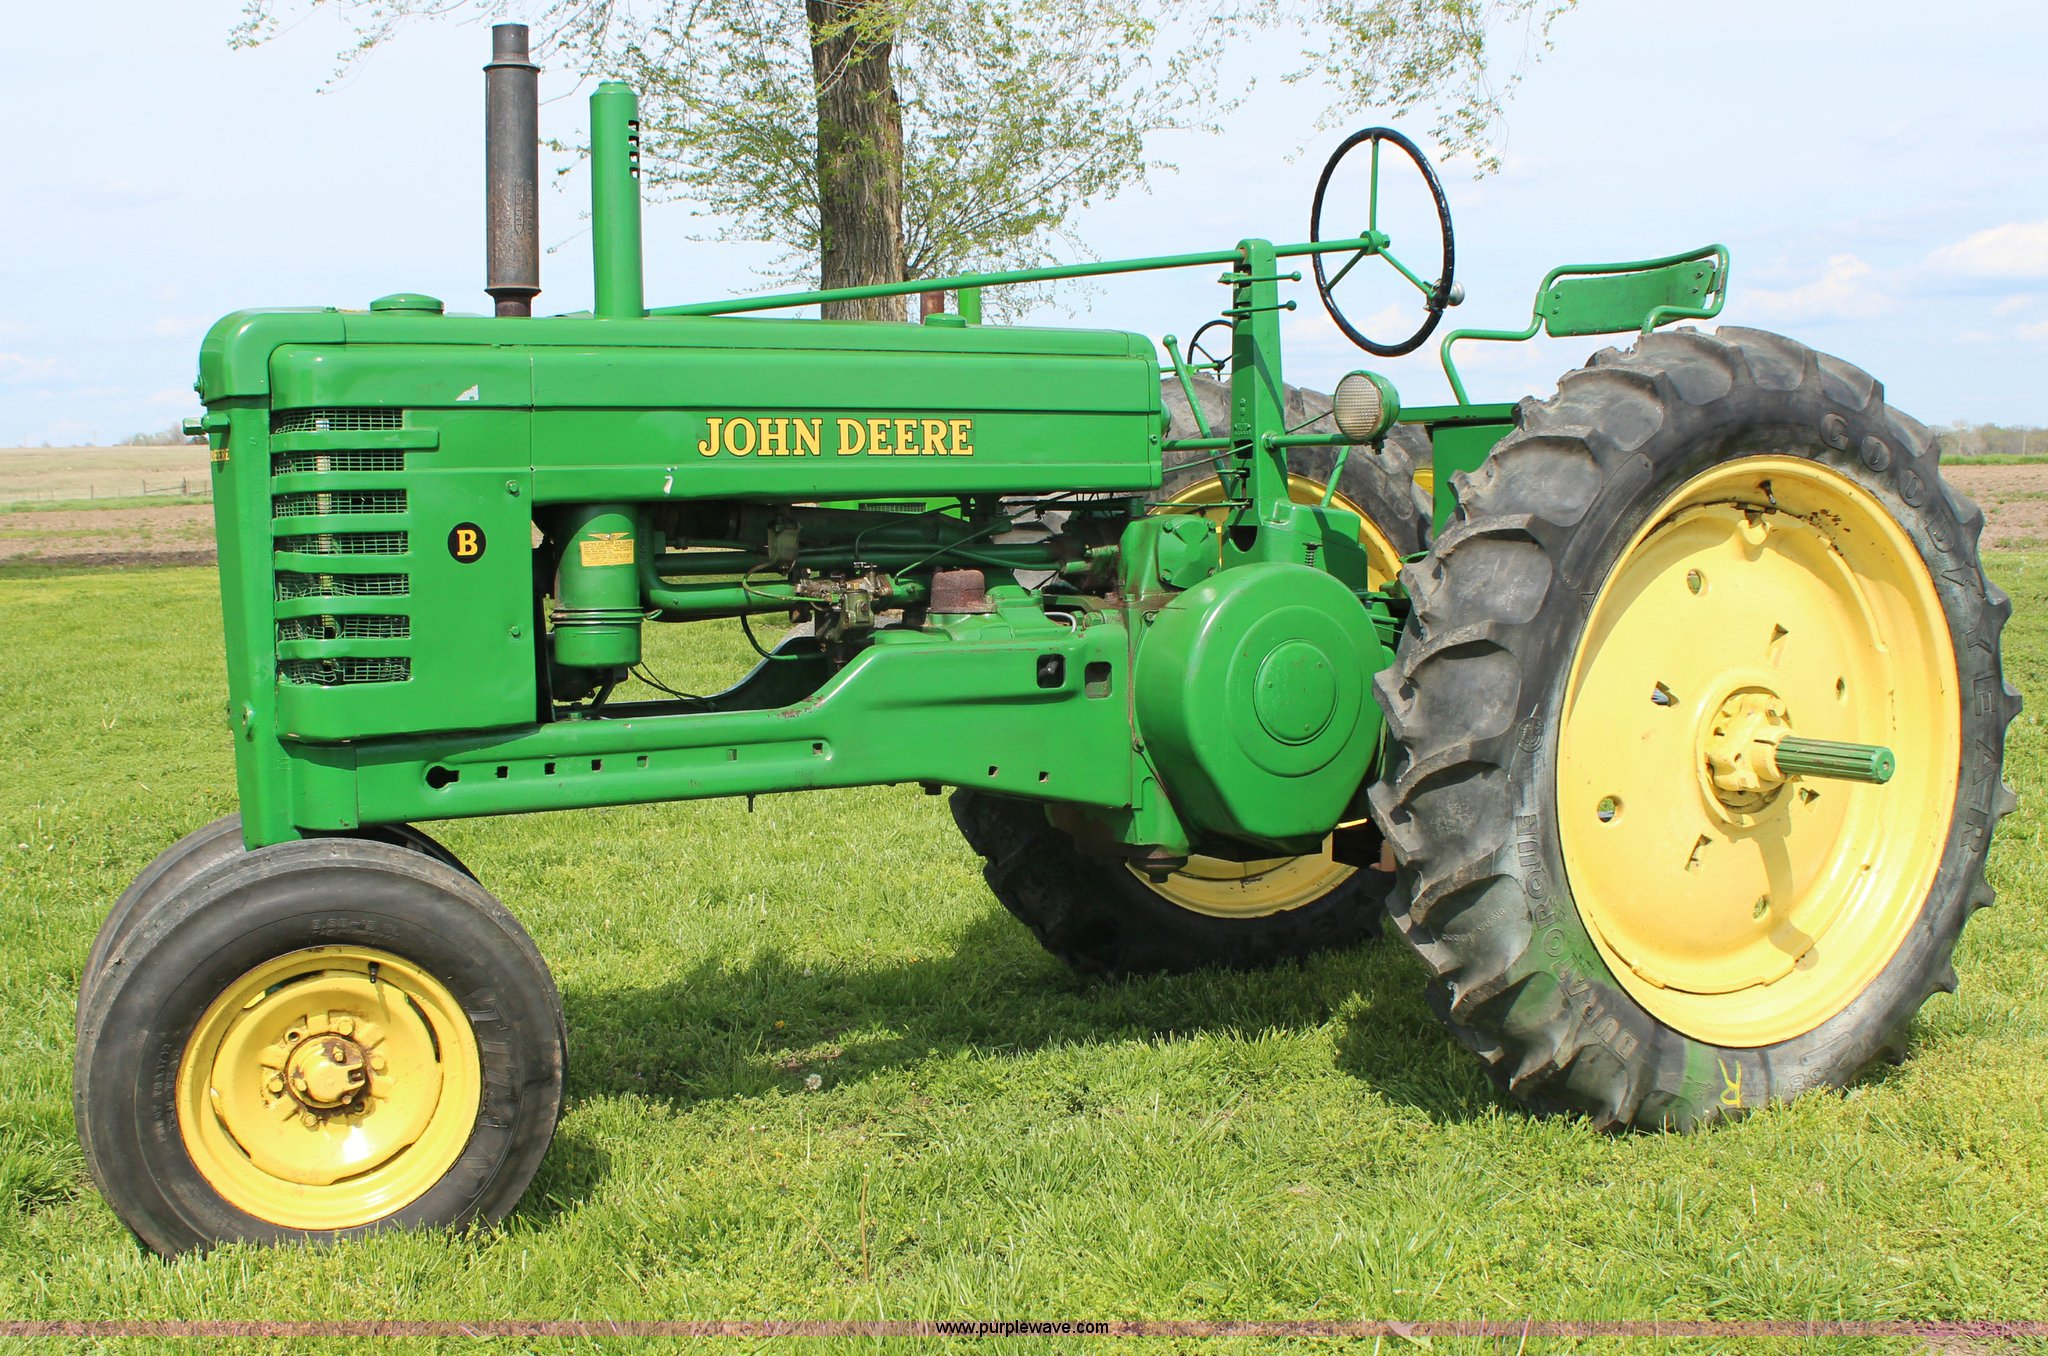 john deere g tractor for sale bt telephone extension box wiring diagram 1952 b item g5394 sold may 29